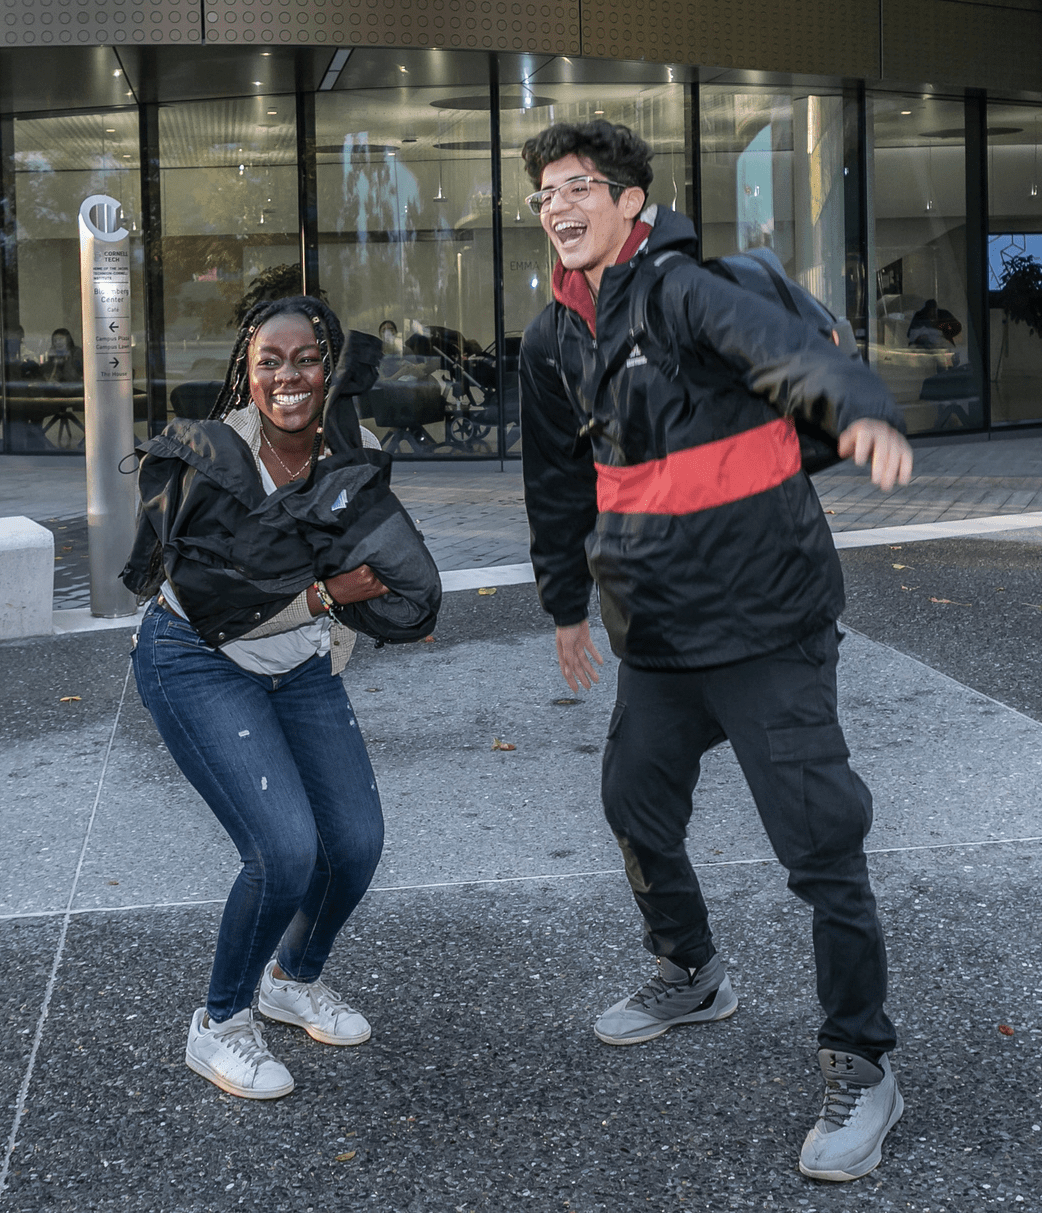 Milstein students jumping in the air at Cornell Tech